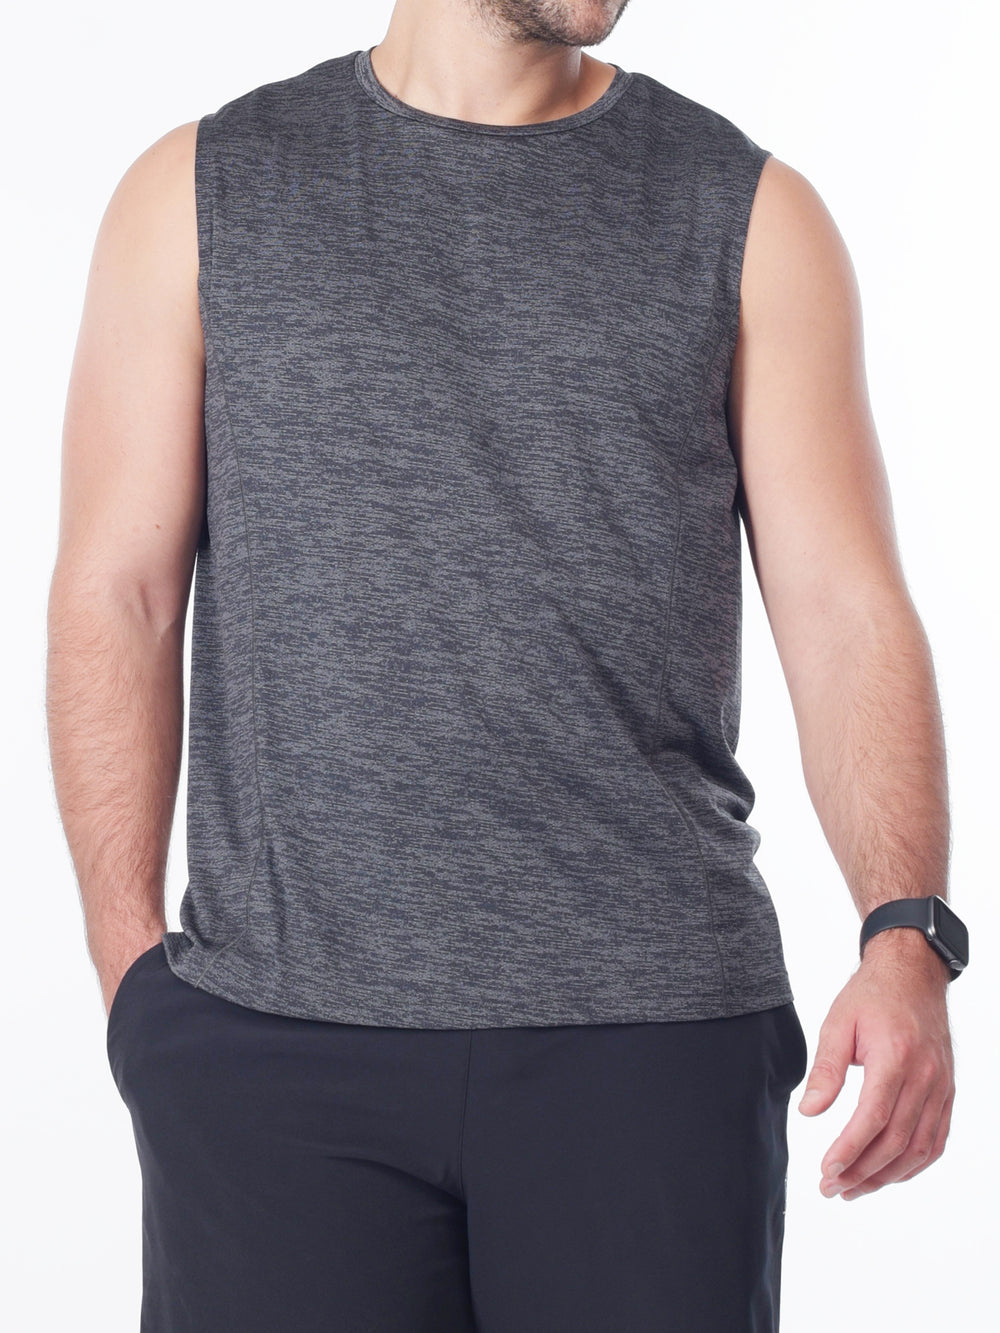 Workout Muscle Tee